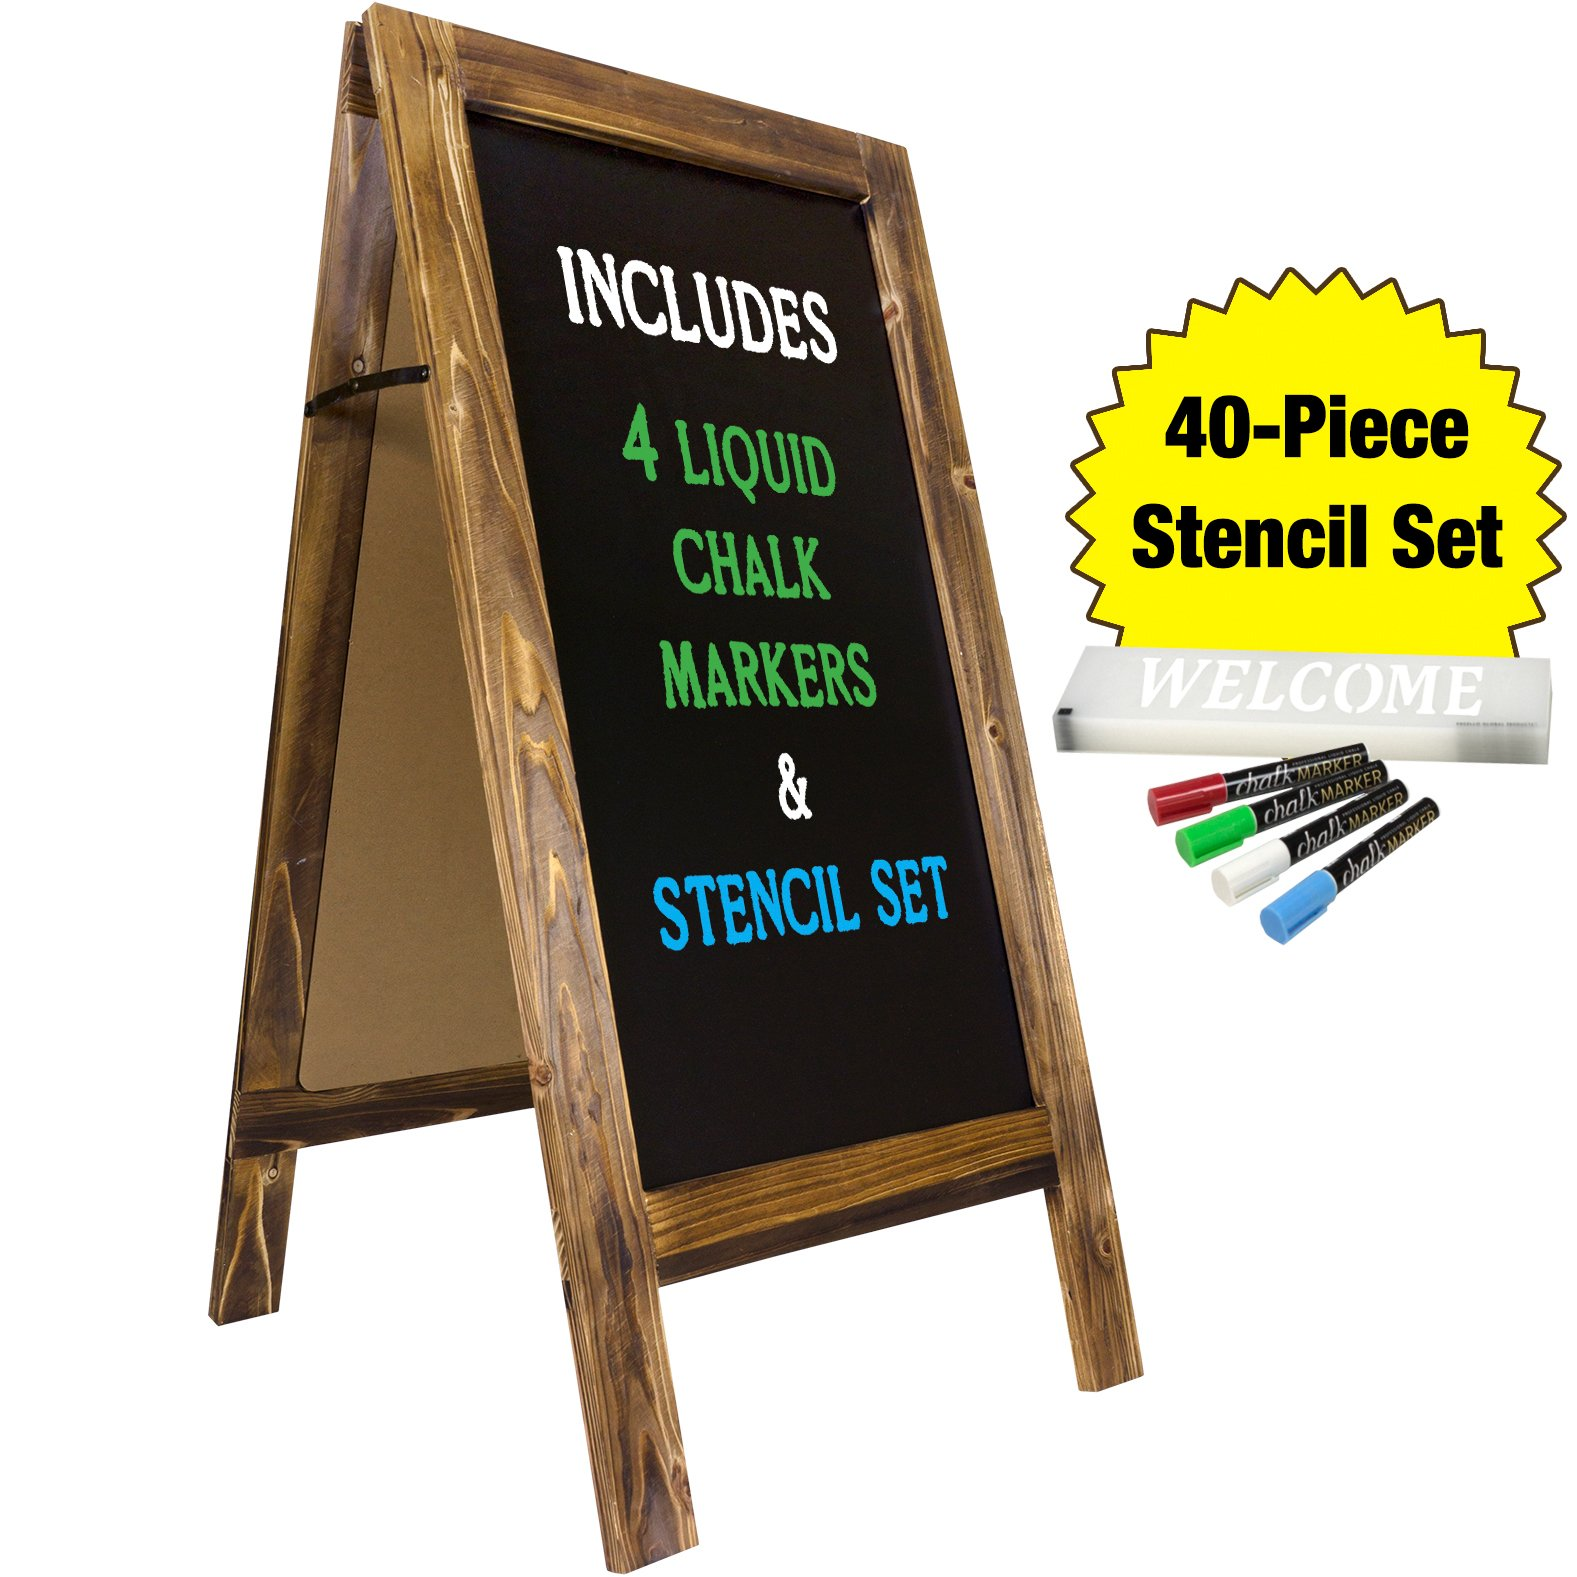 Large Sturdy Handcrafted 40'' x 20'' Wooden A-Frame Chalkboard Display / 4 Liquid Chalk Markers & Stencil Set/Sidewalk Chalkboard Sign Sandwich Board/Chalk Board Standing Sign (Rustic) by Excello Global Products